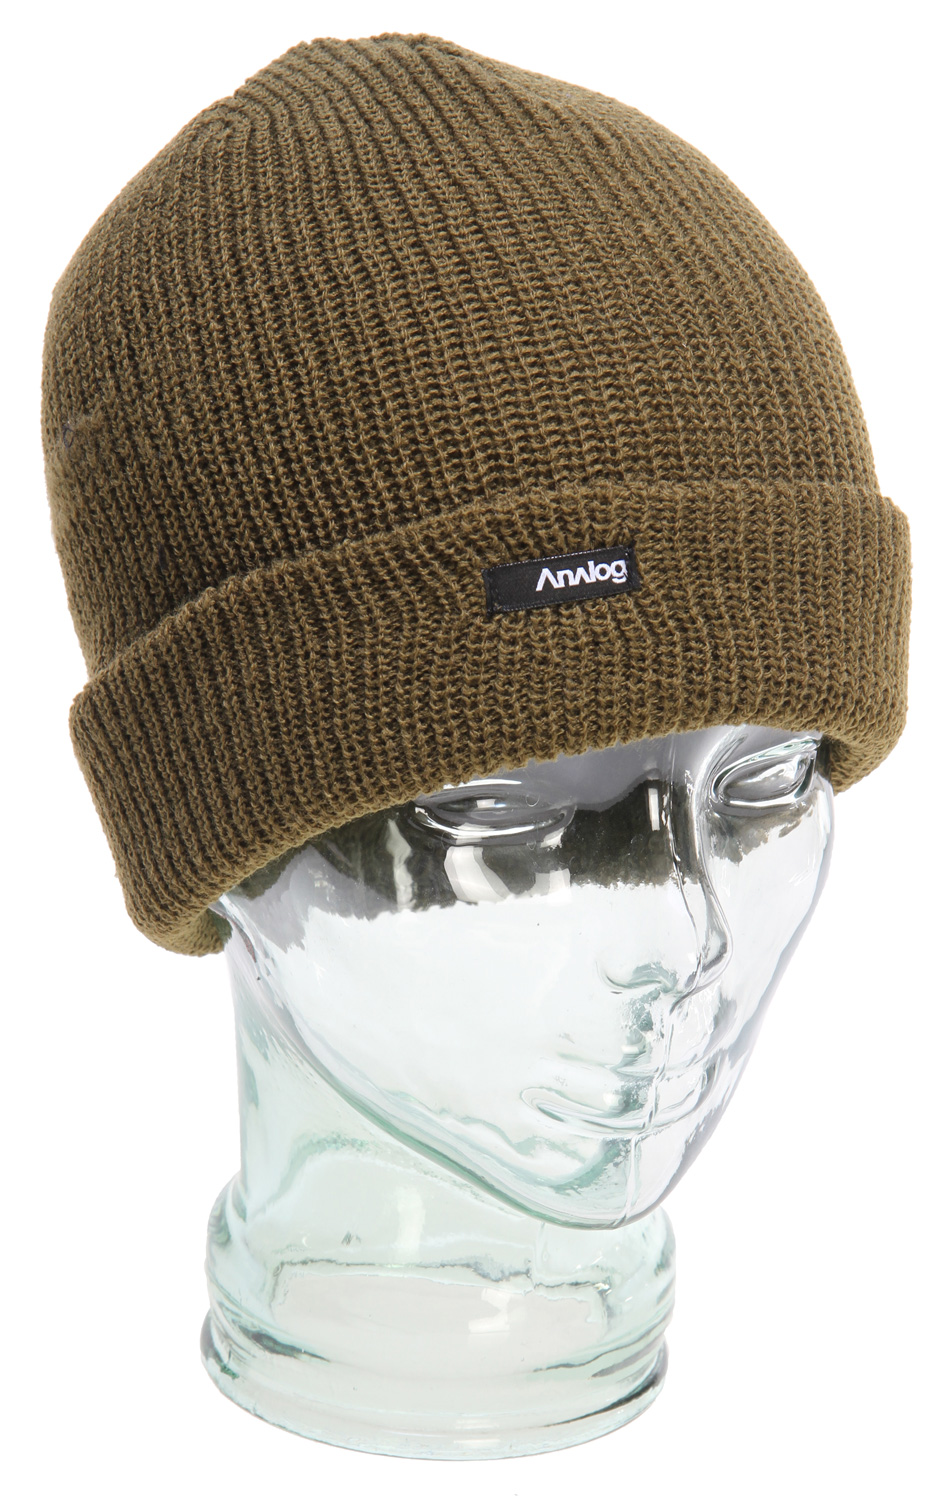 Key Features of the Analog Burglar Beanie: 100% Acrylic Burglar fit - $16.95